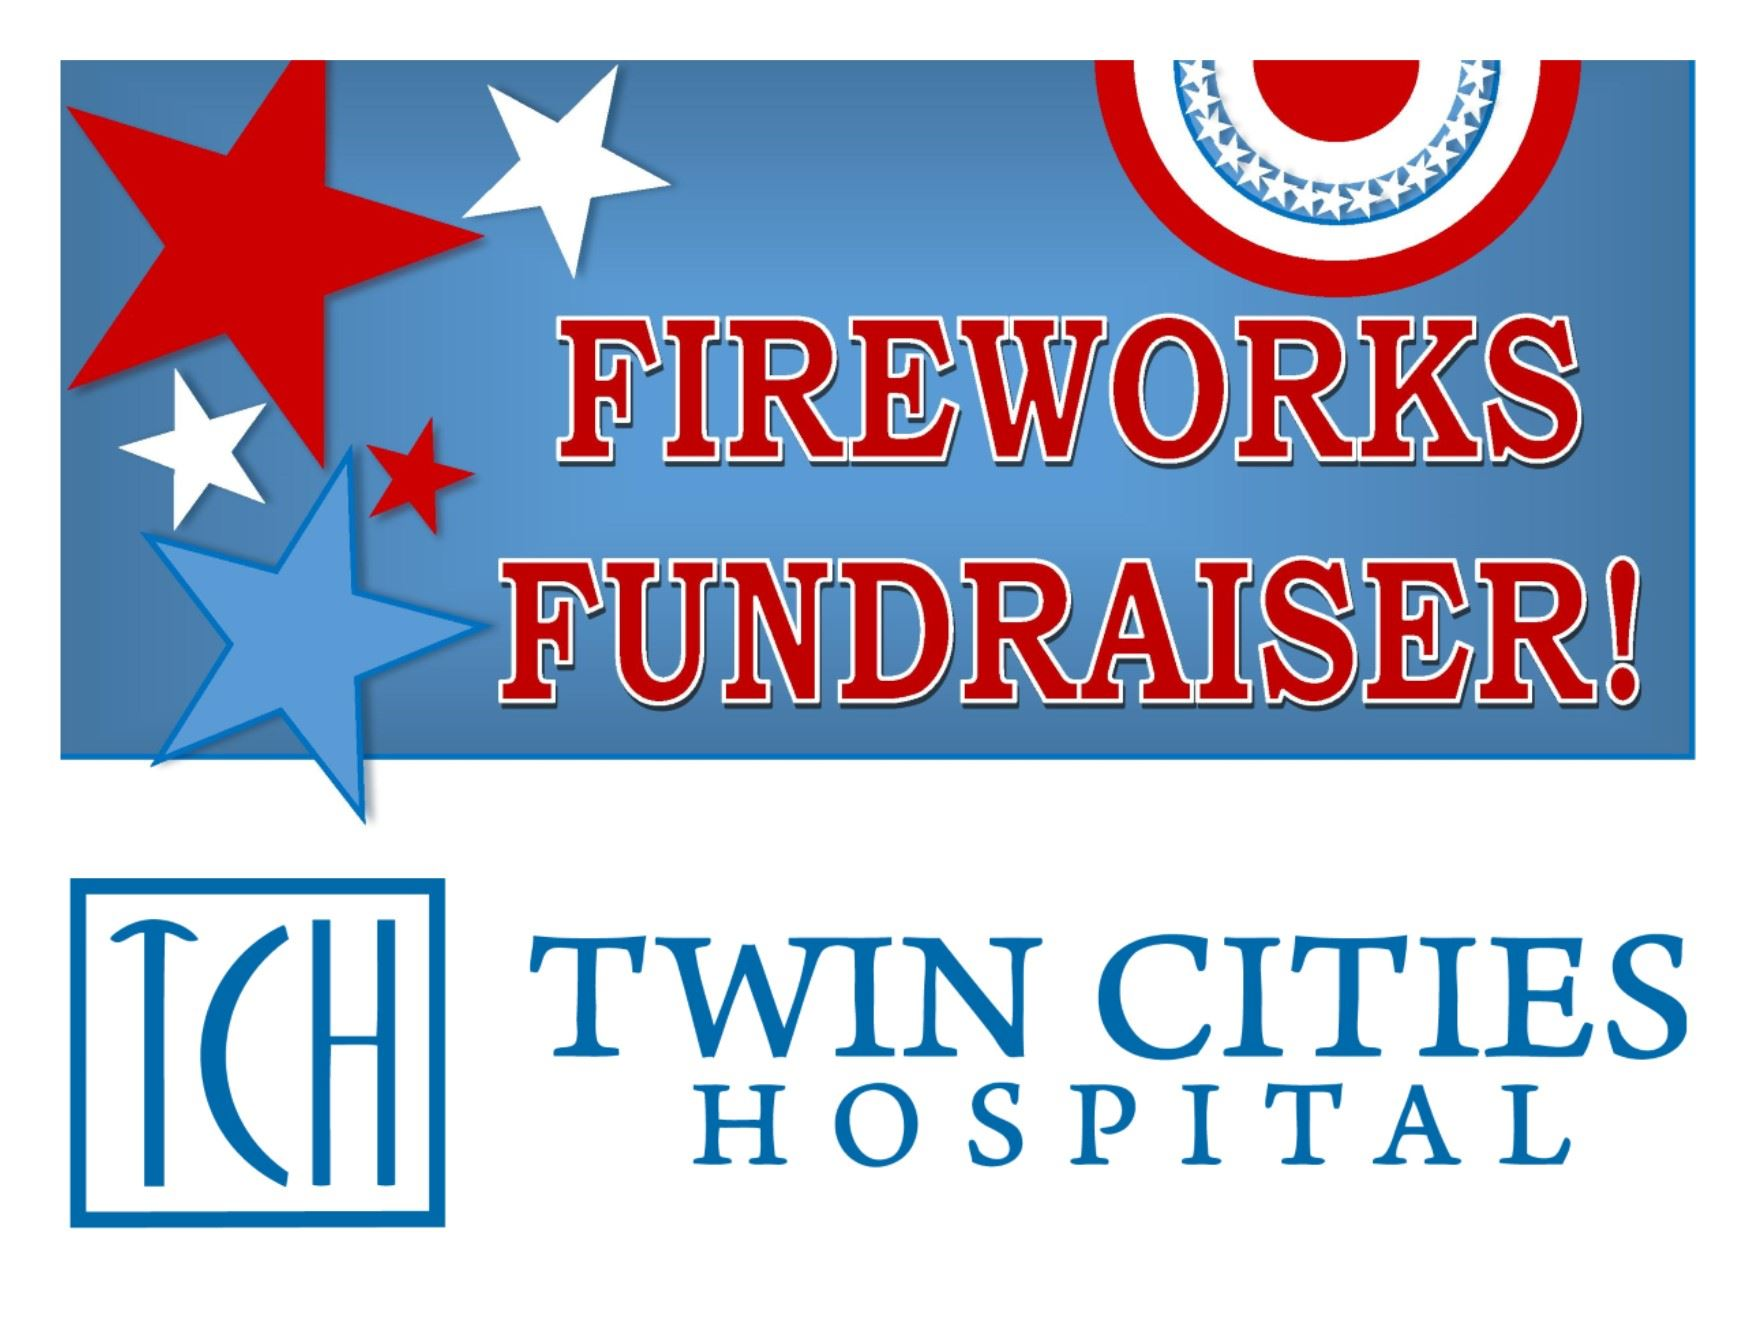 Fireworks Fundraiser at Twin Cities Hospital